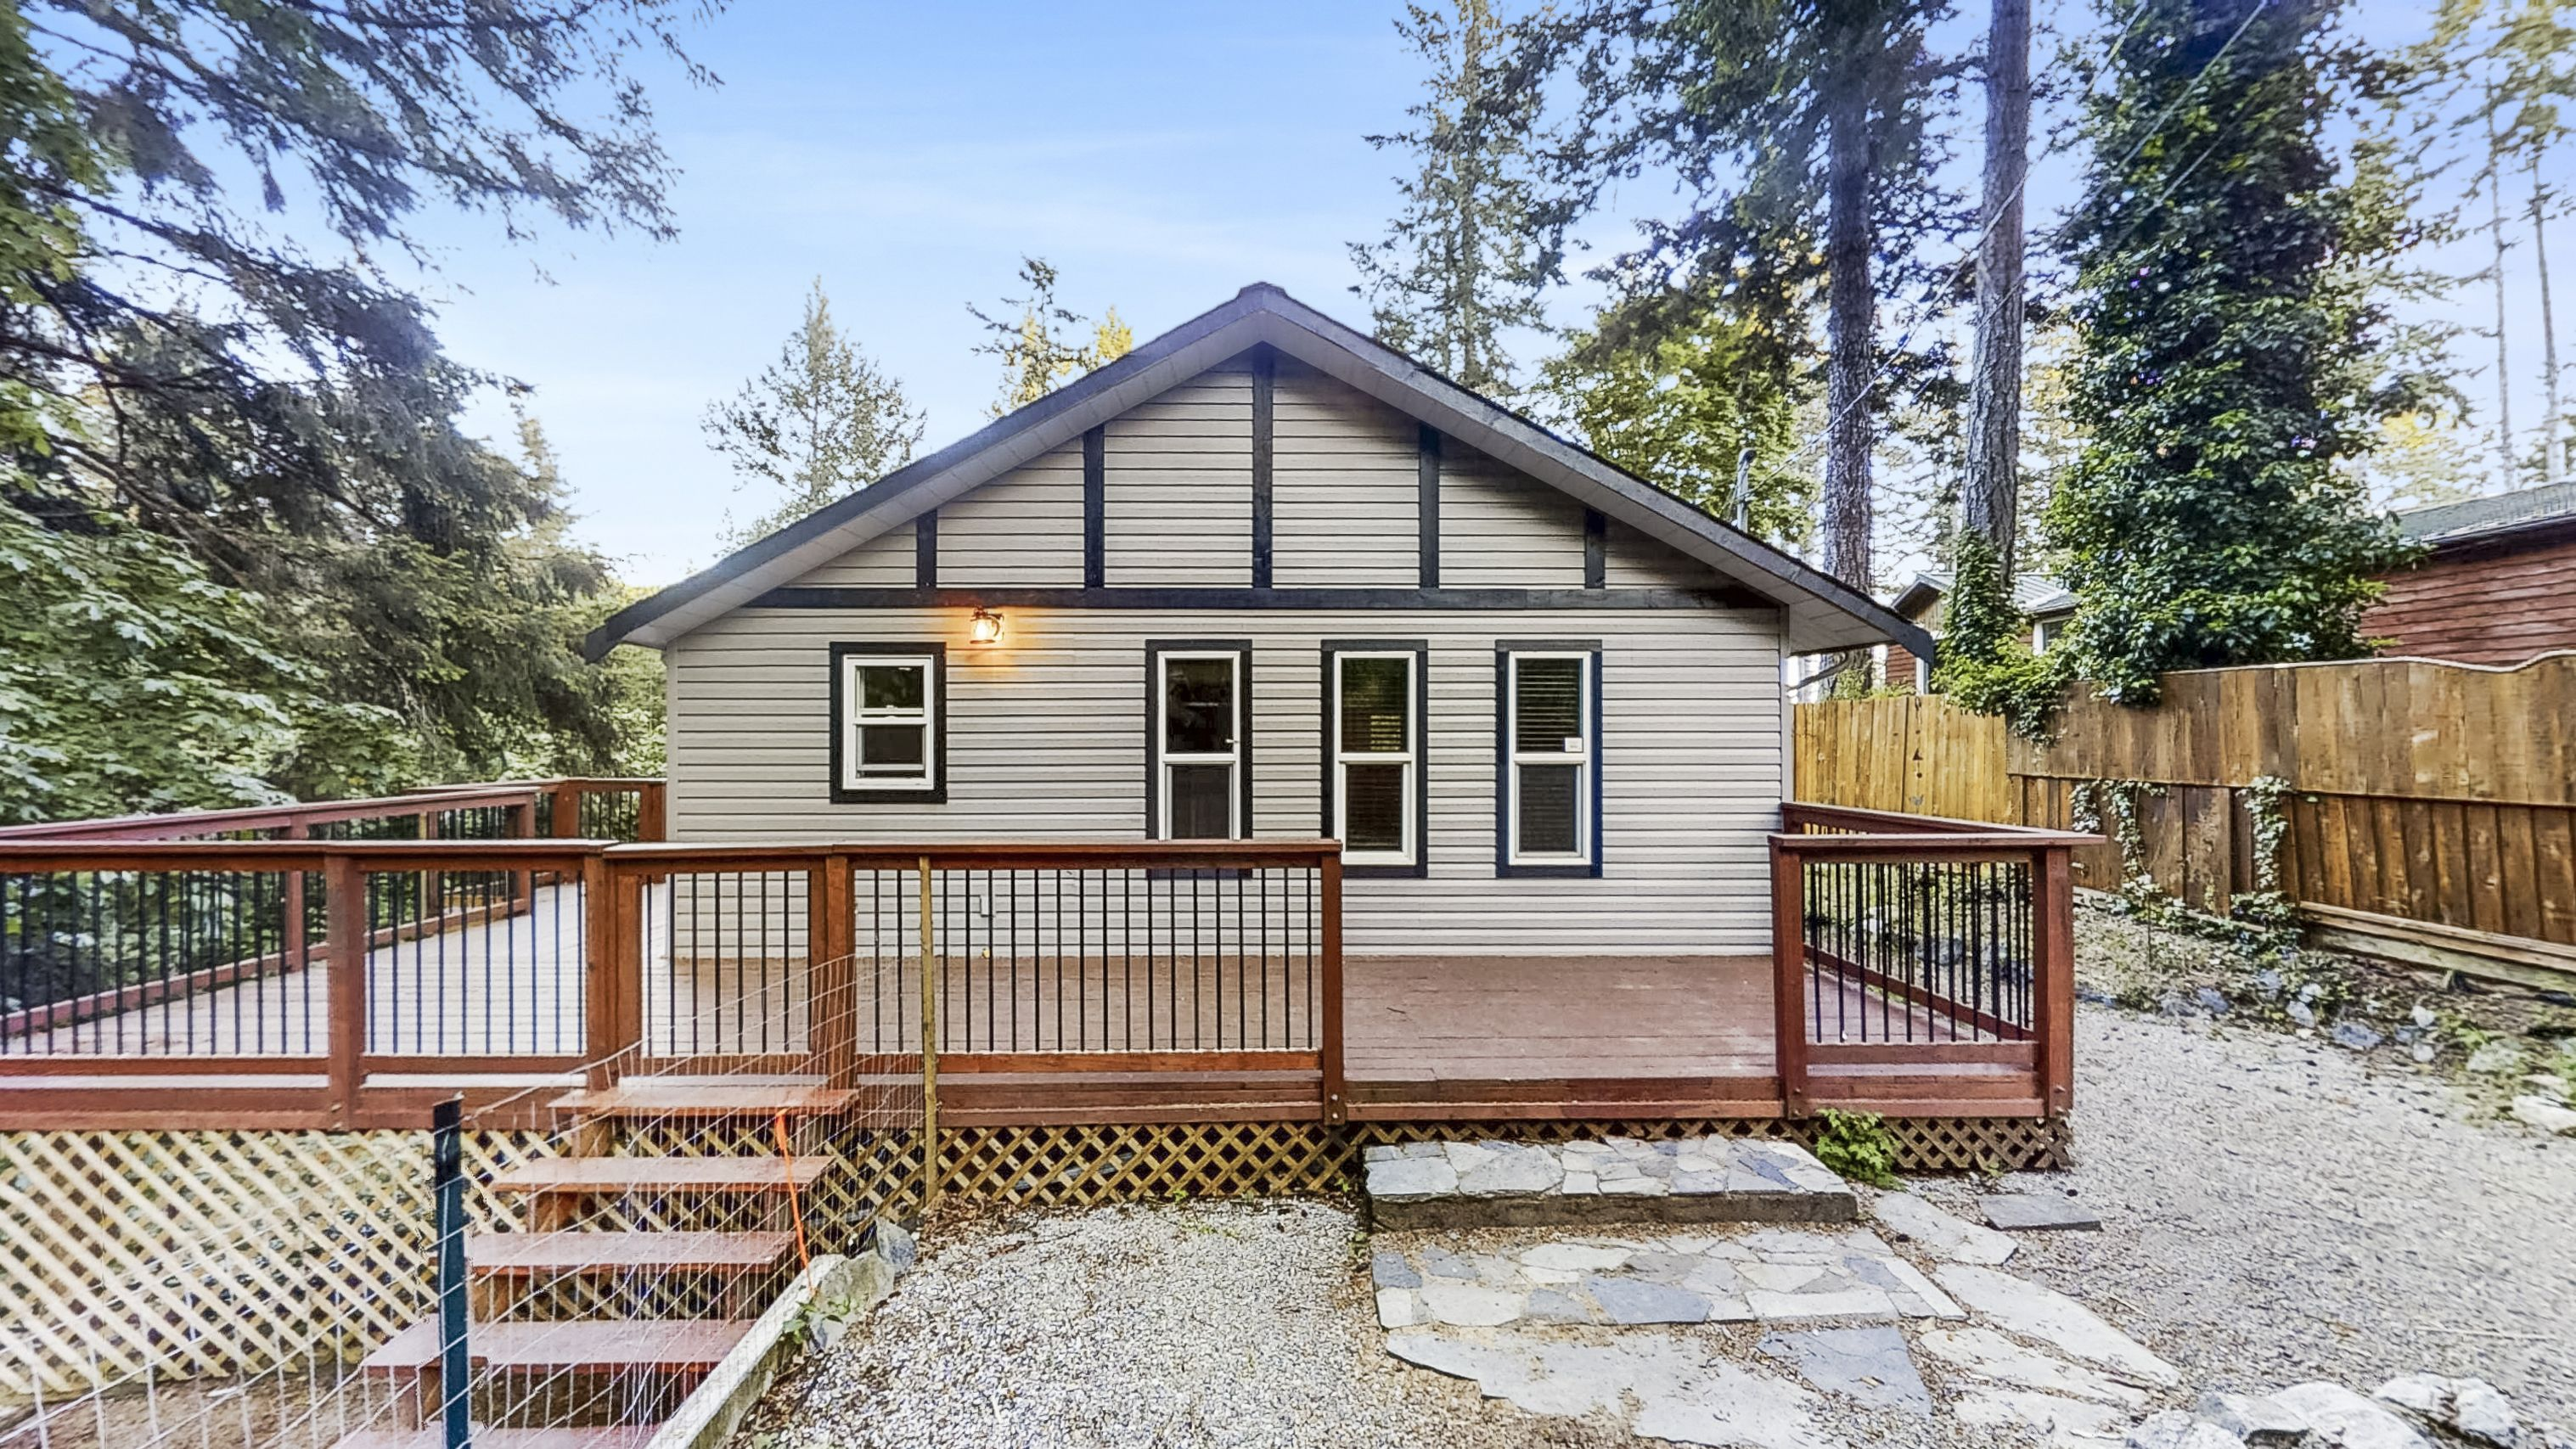 Cozy 2-bedroom home on sunny acreage in Sooke - 2.8 acres, your own creek, trees and privacy galore!